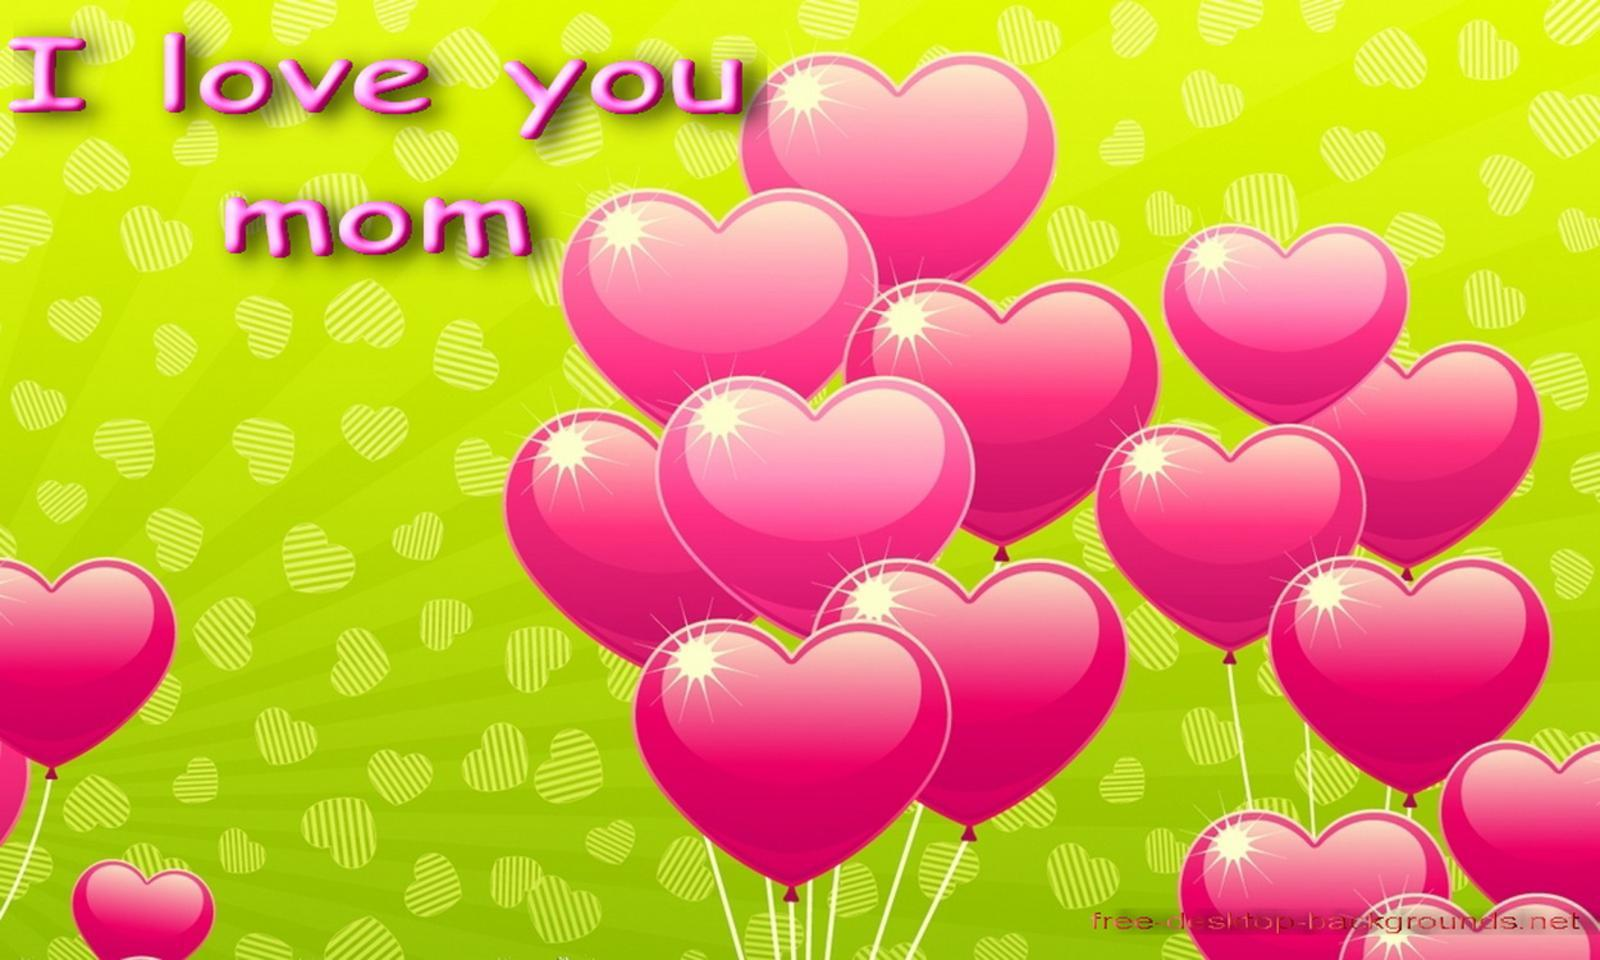 Desktop Background Wallpapers I Love You Mom Desktop Wallpapers